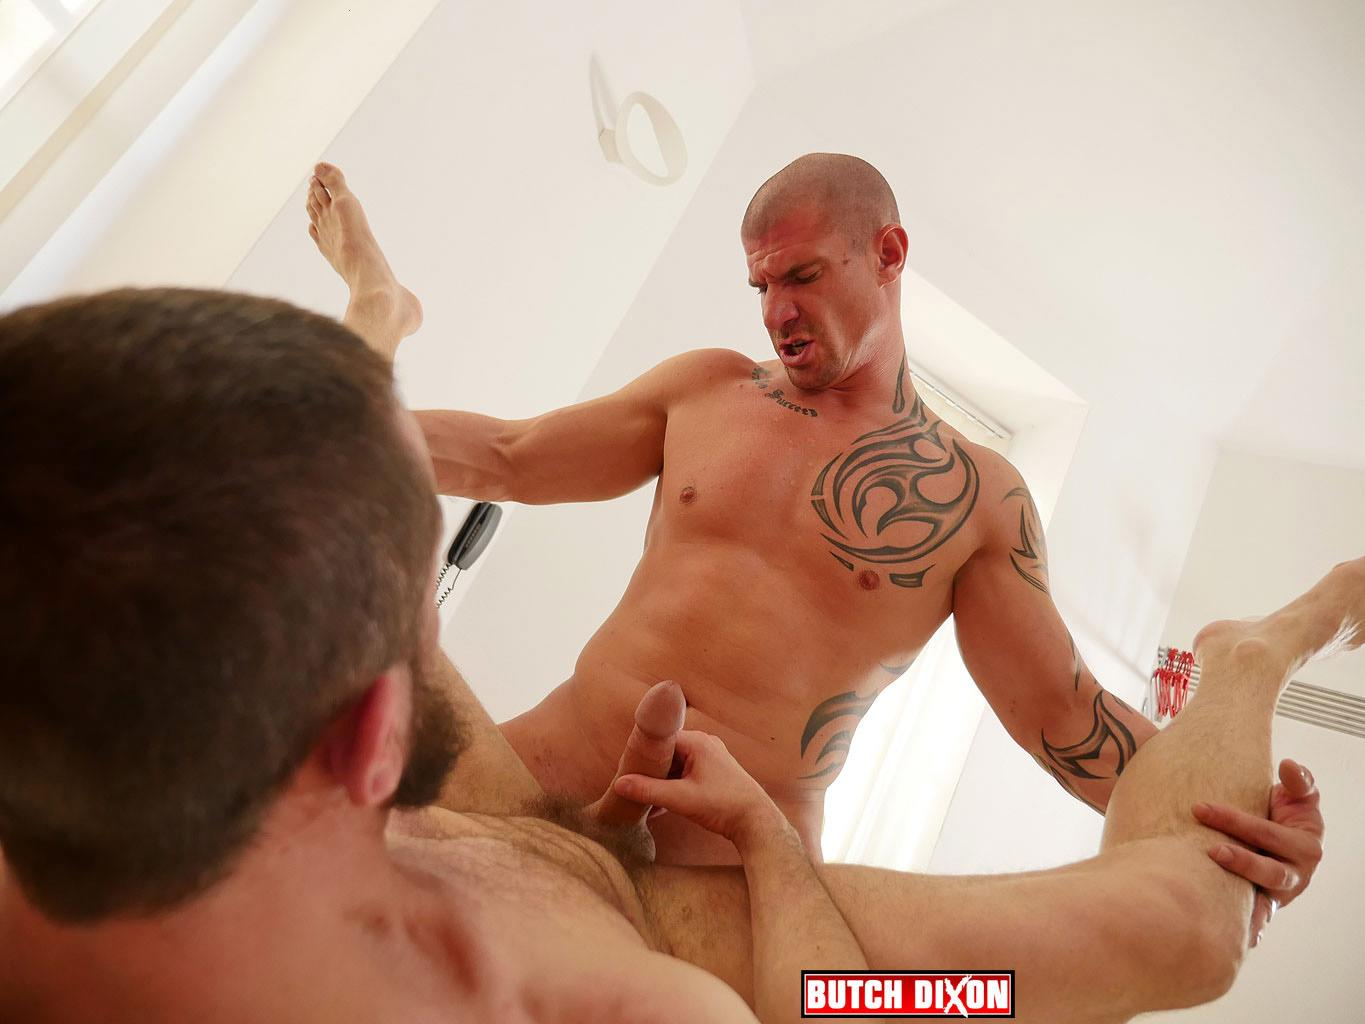 Butch Dixon Erik Lenn and Mike Bourne Masculine Guys Fucking Bareback Amateur Gay Porn 18 Beefy Masculine Guys Fucking Bareback With A Big Uncut Cock